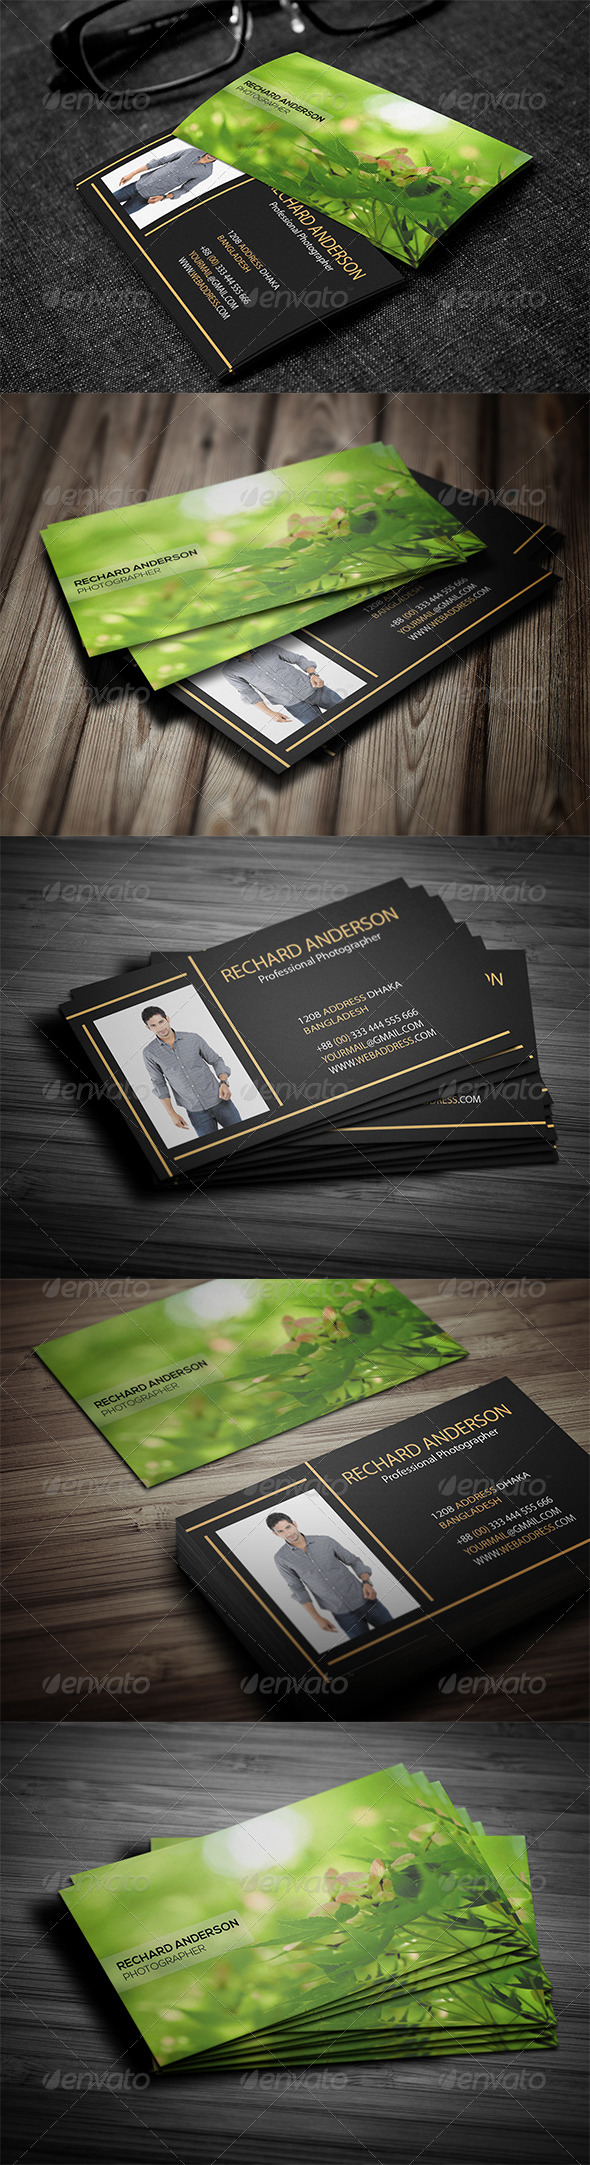 GraphicRiver Photographer Business Card 7727236